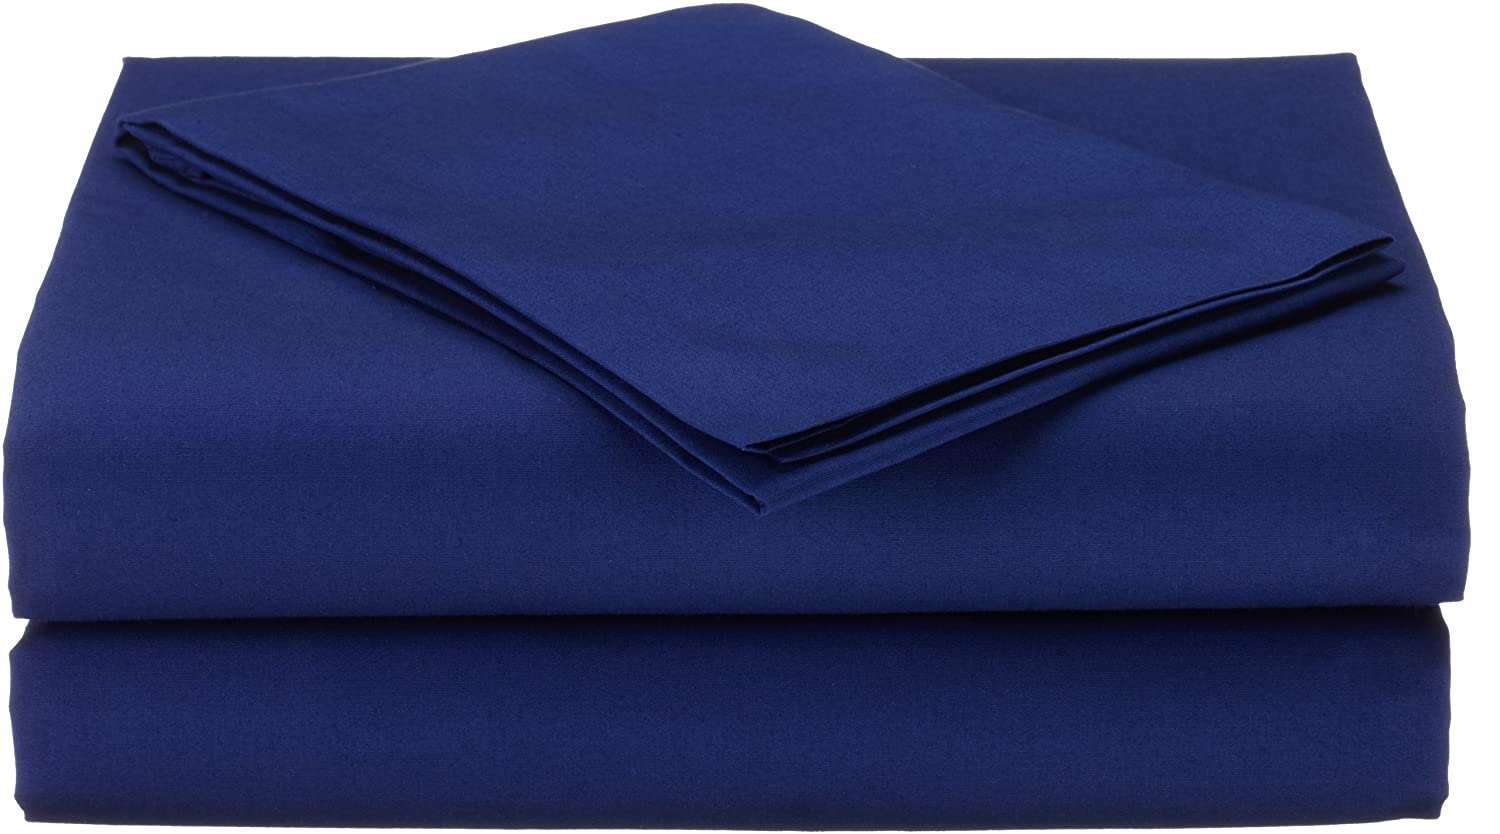 American Baby Company 100% Cotton Percale Toddler Bedding Sheet Set, Blue, 3 Piece 1430